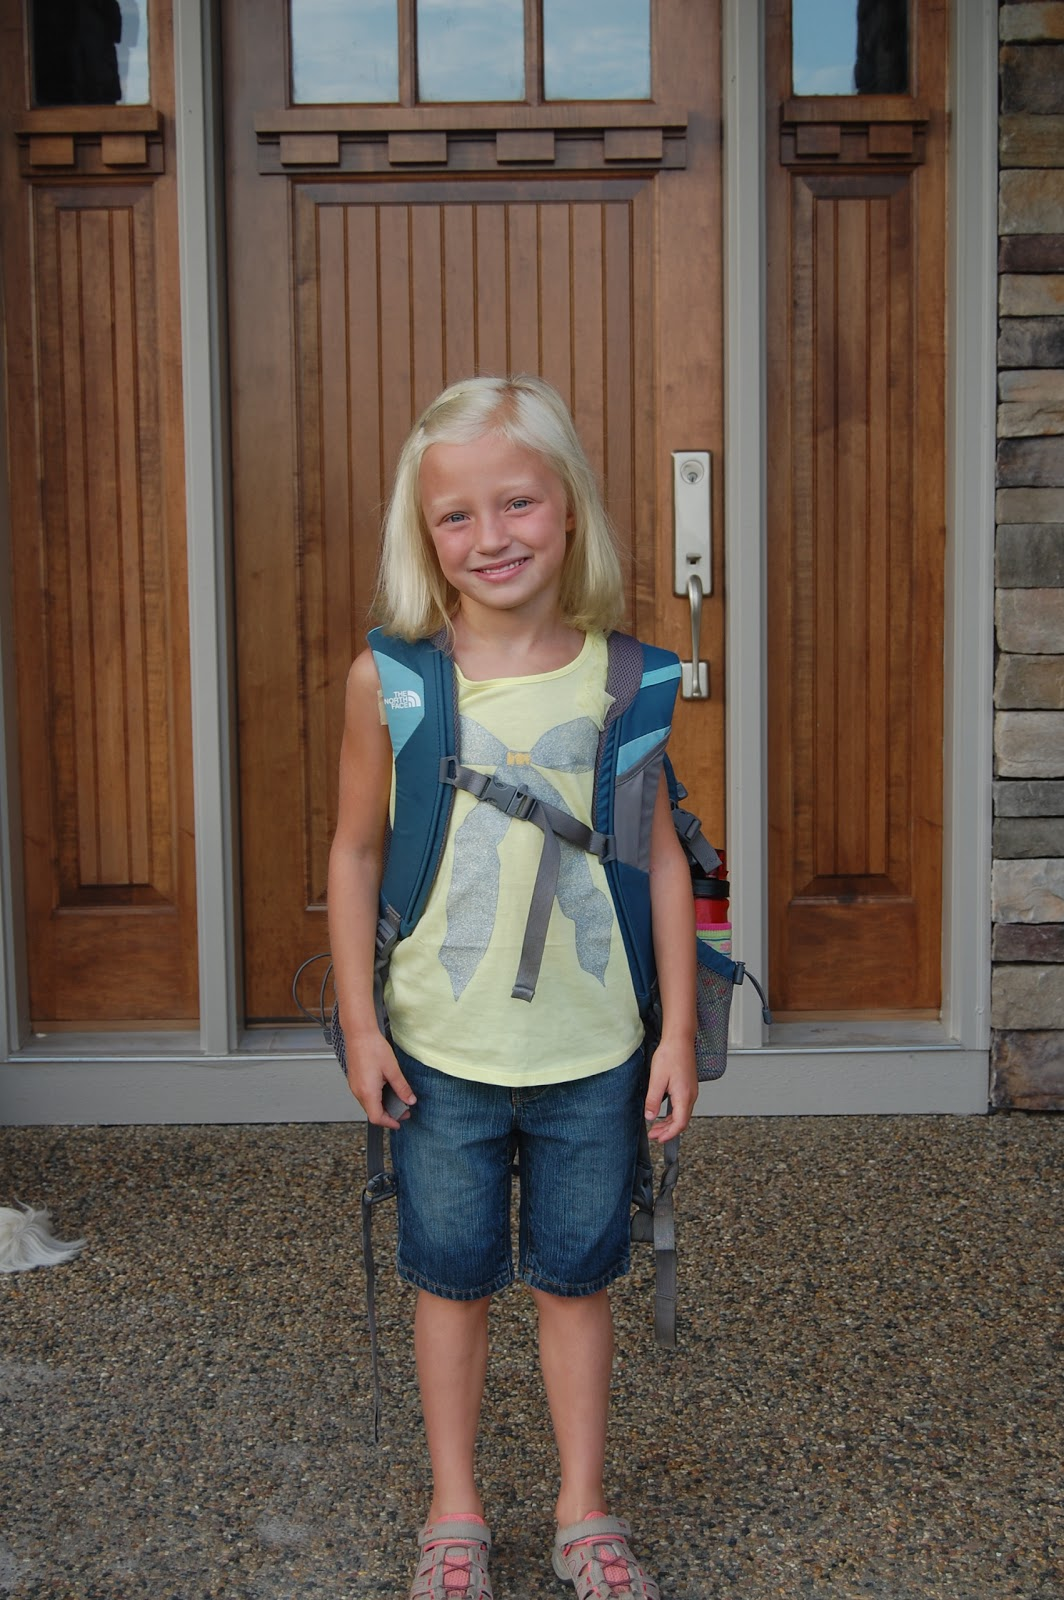 Eidsness Family Blog: First day of School 2011